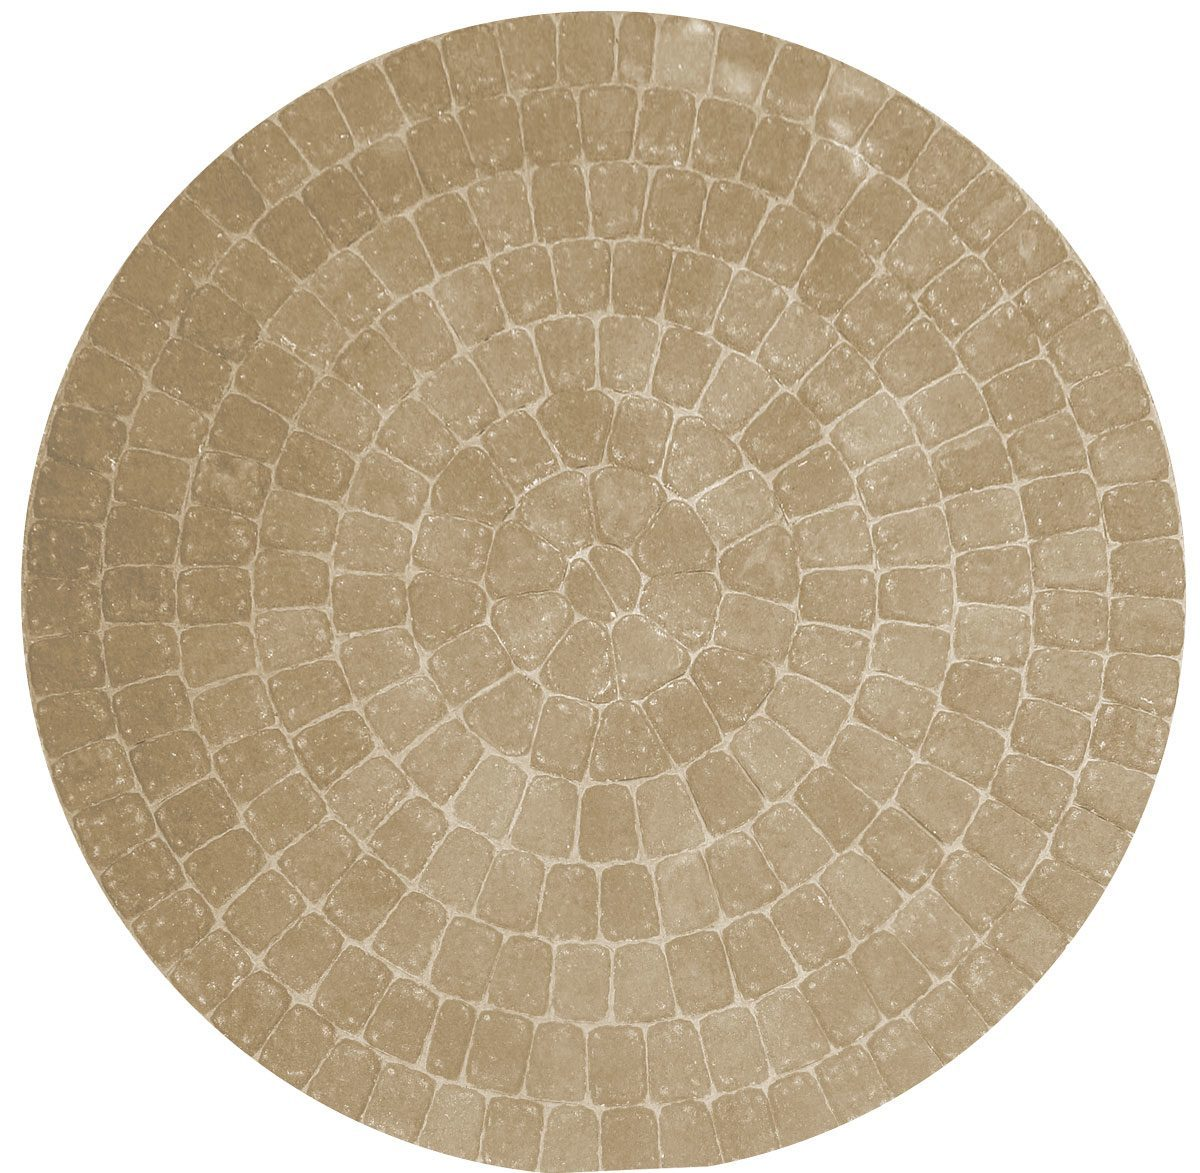 Century Series Cobble Circle Kit Romanstone Hardscapes